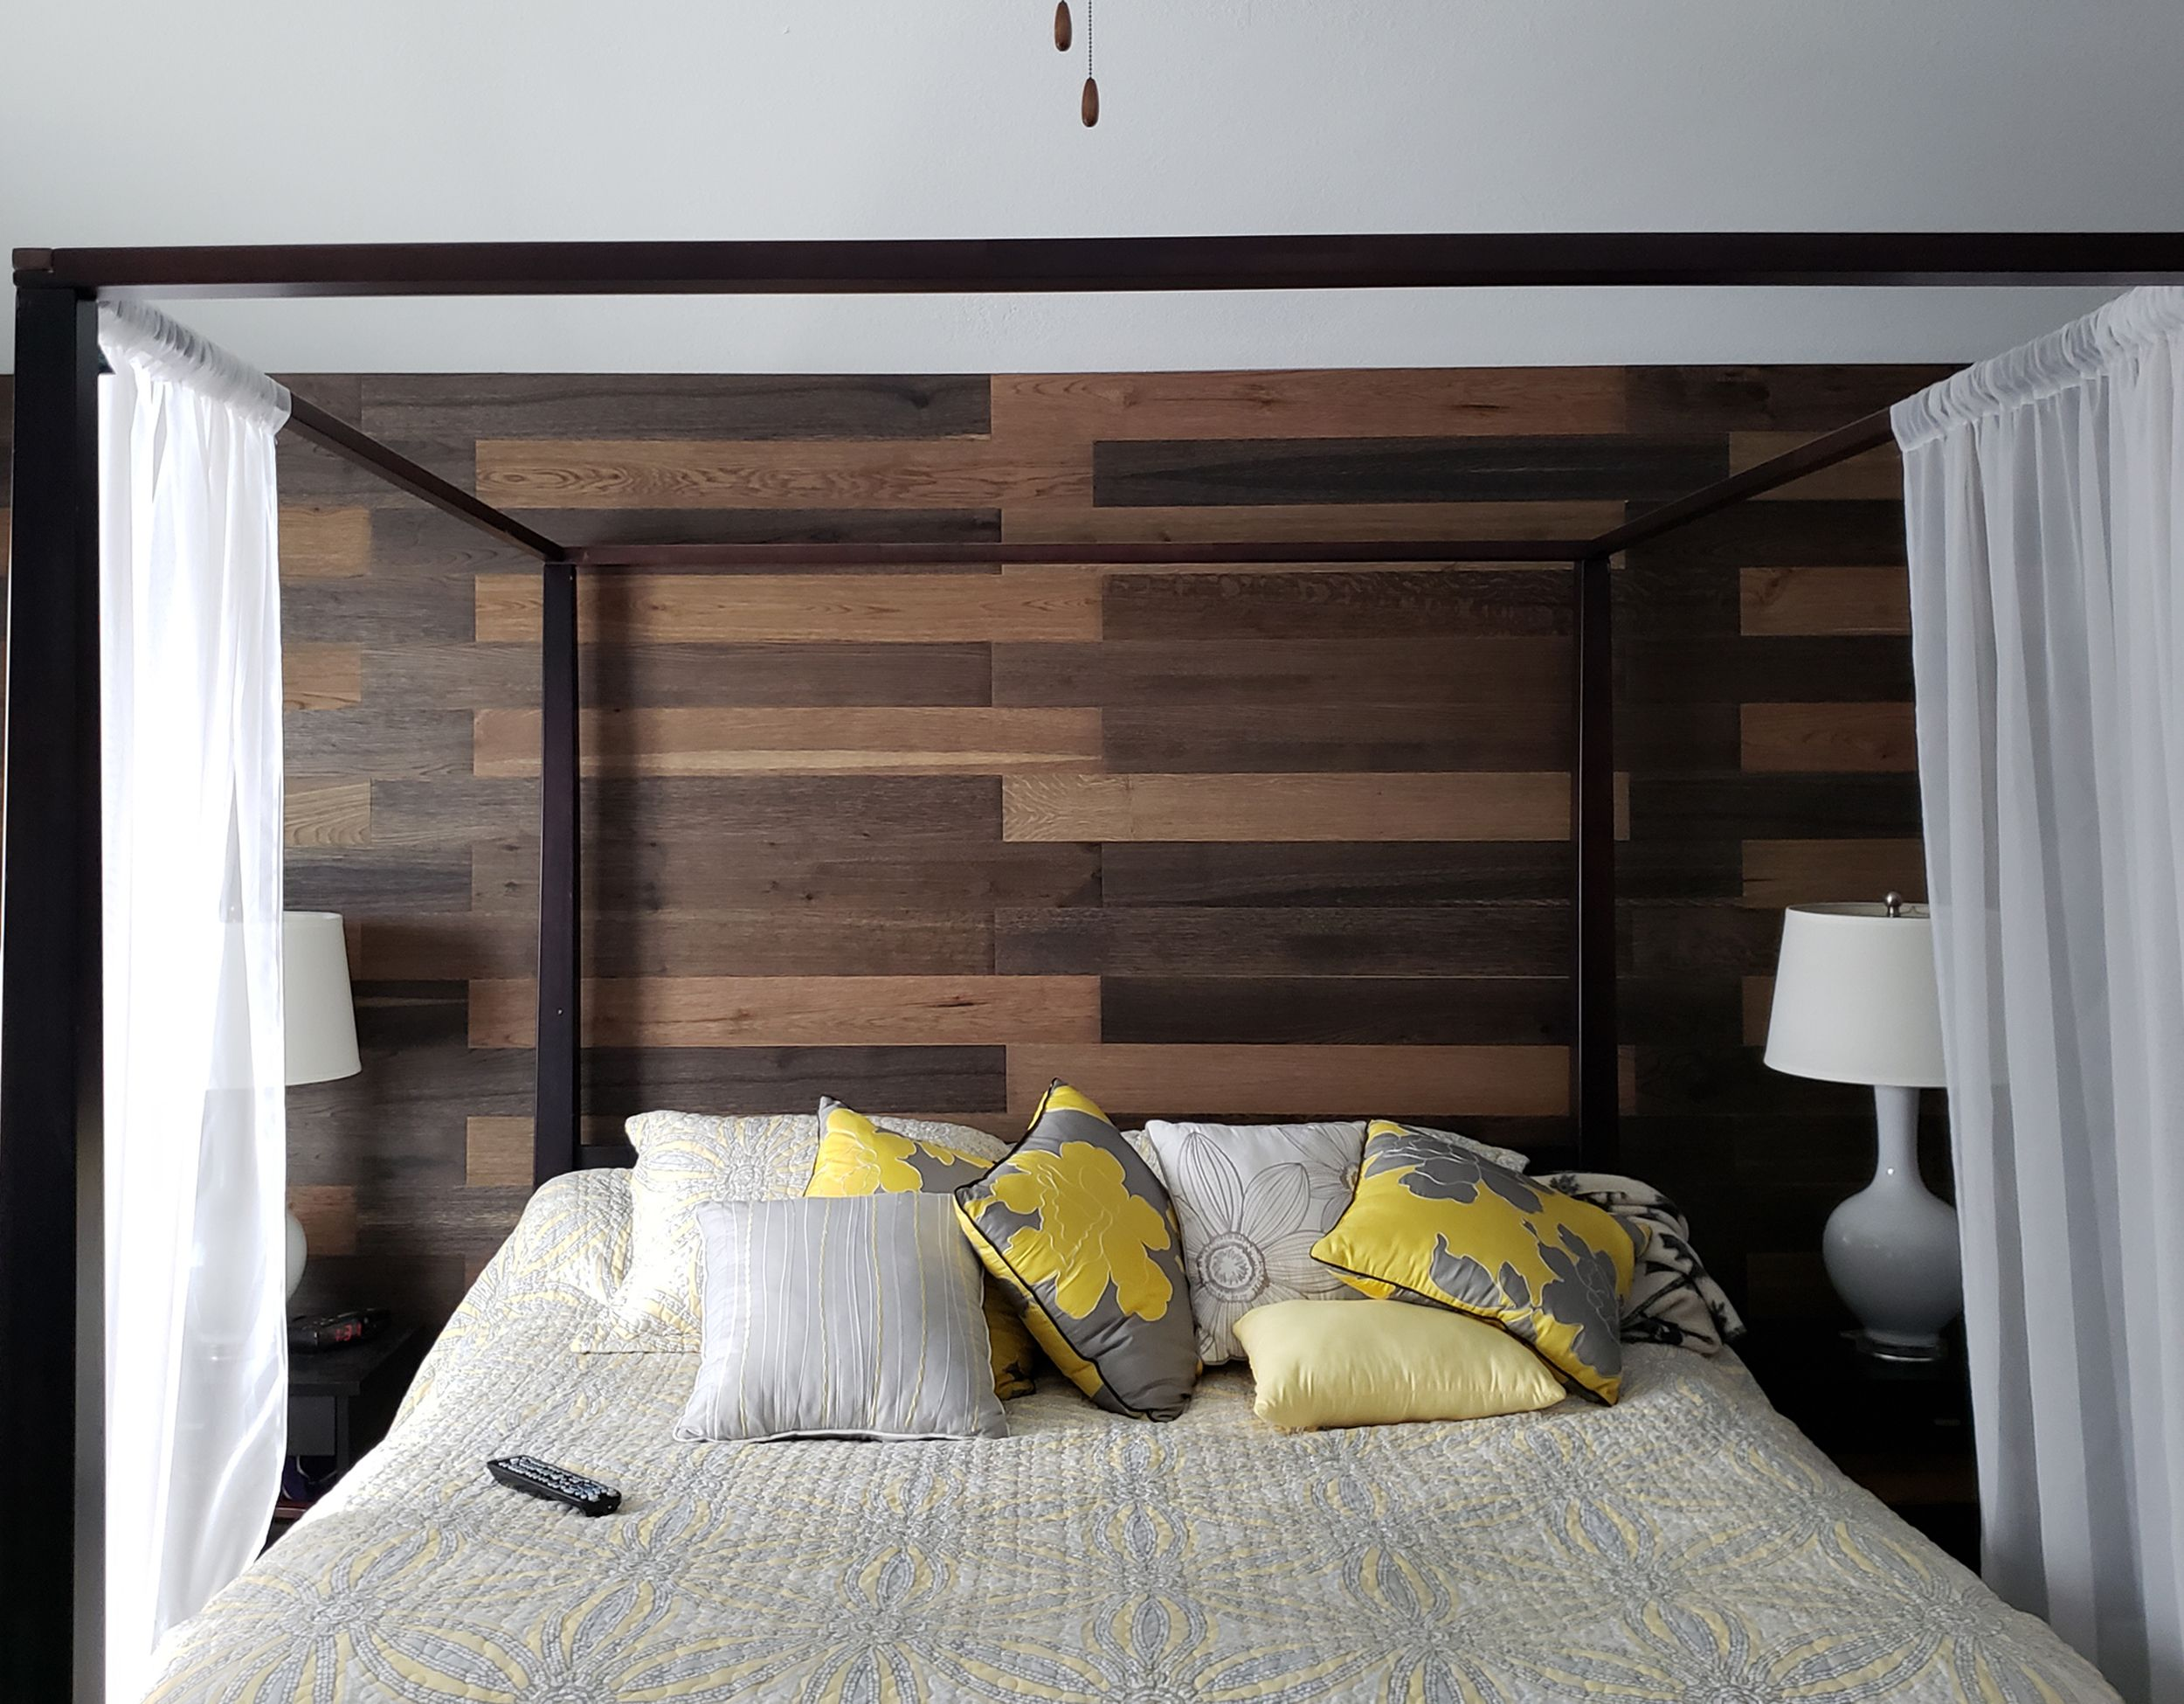 Peel And Stick Wood Wall Planks Behind Bed In Master Bedroom Accent Wall Dark Rustic Hardwood Panels Master Bedroom Accents Stick On Wood Wall Rustic Hardwood